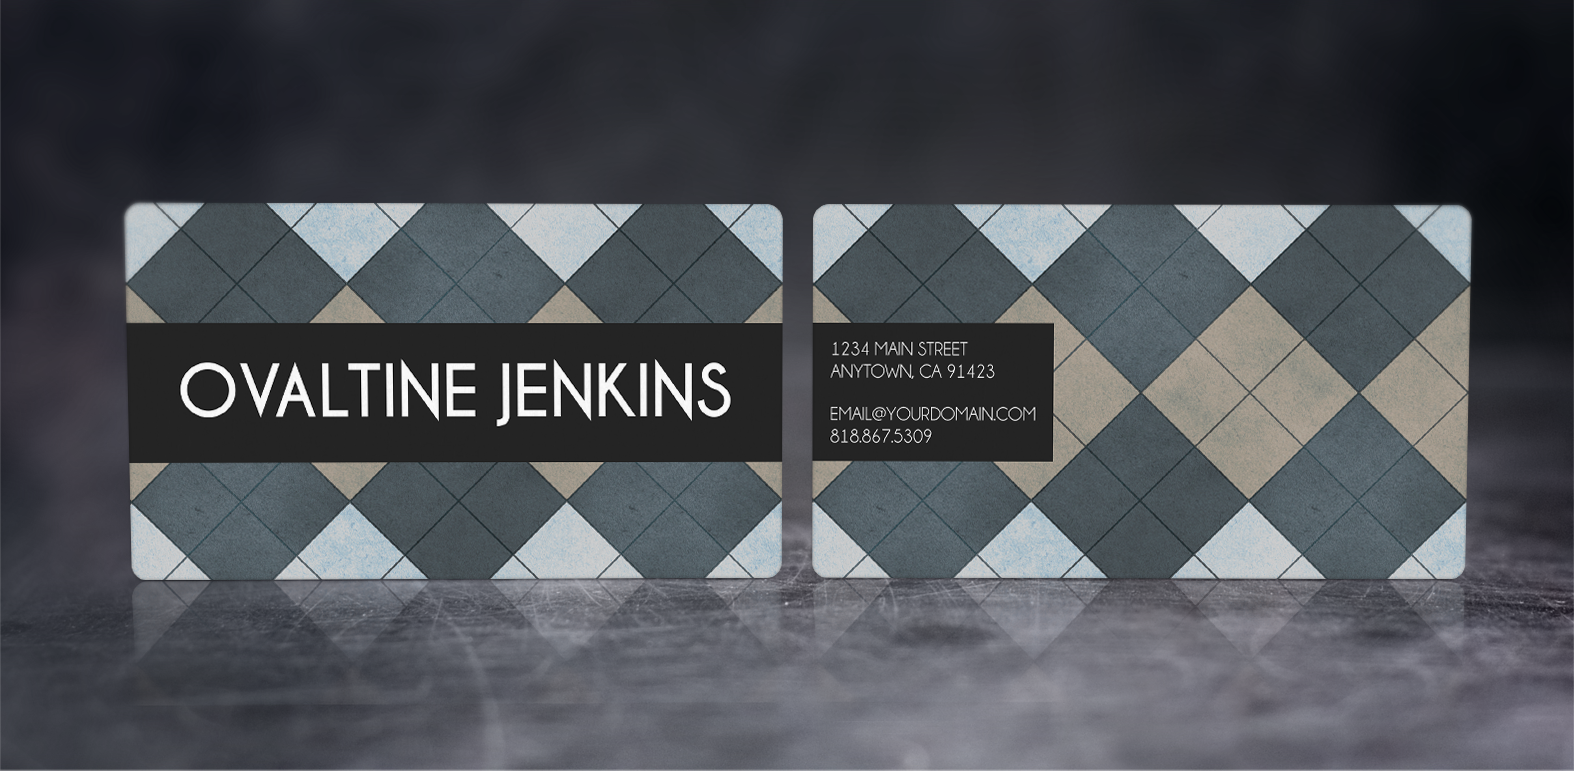 Argyle Business Cards - Alternate Layout